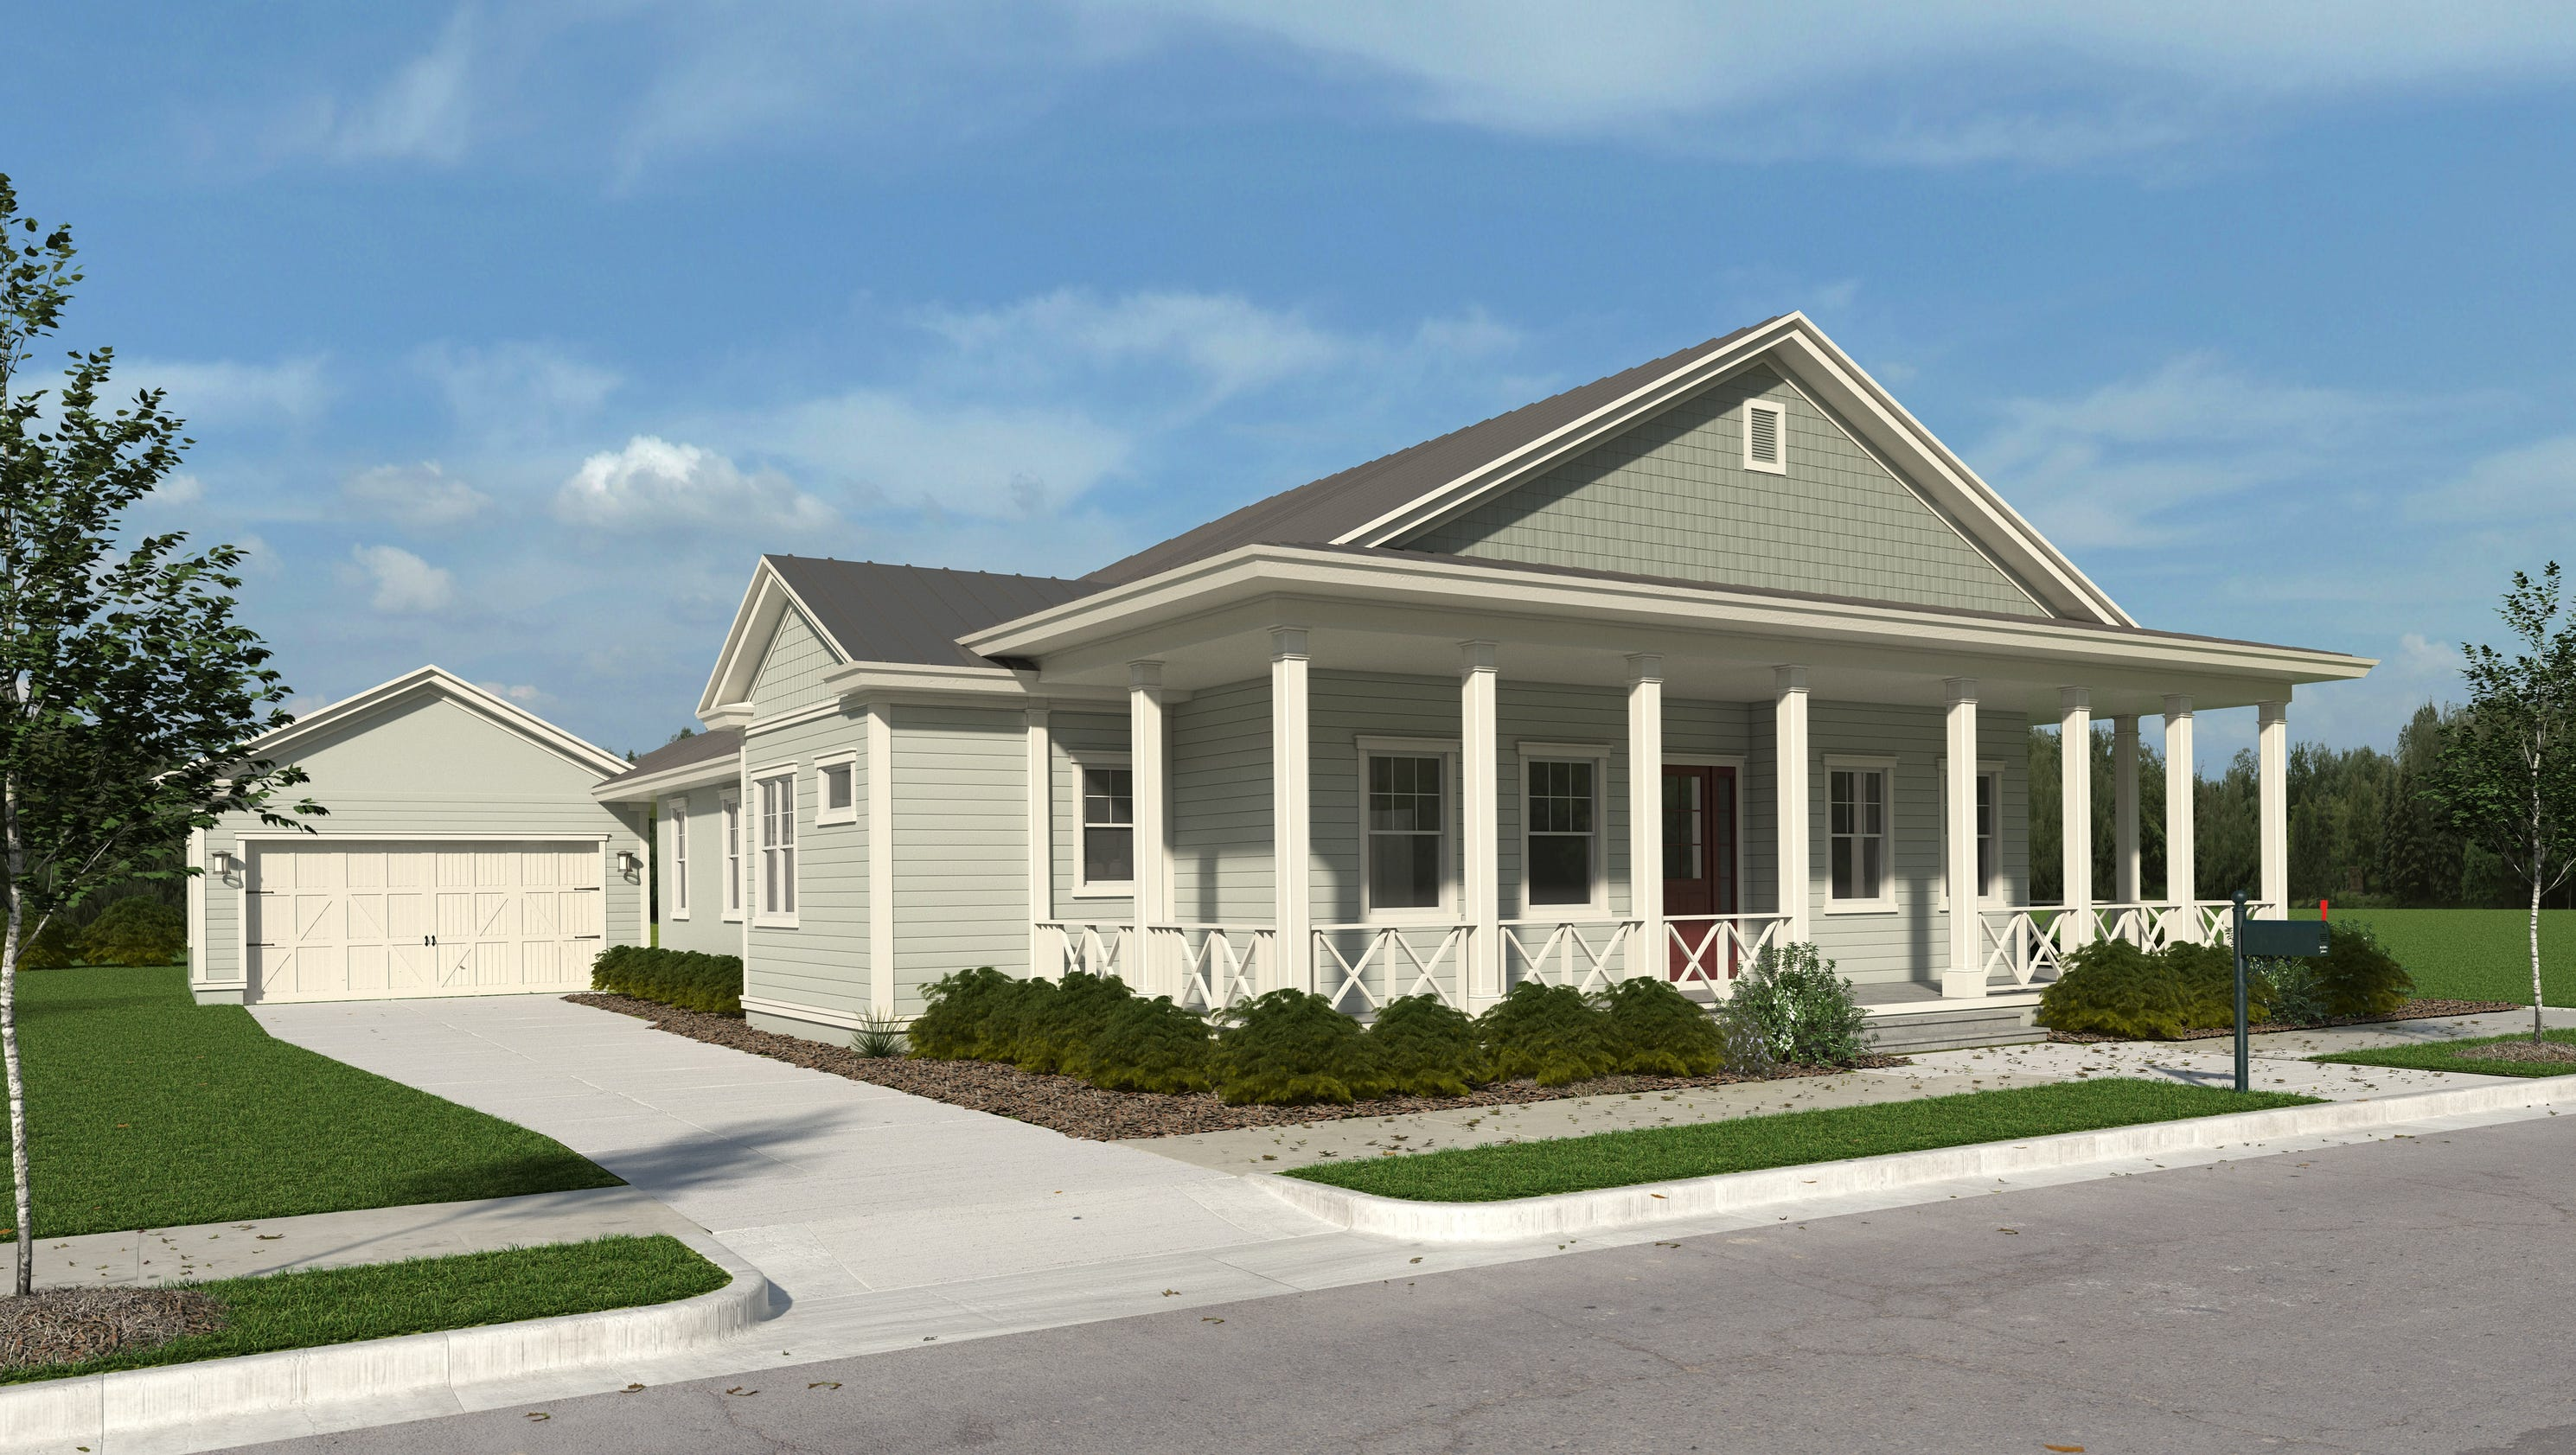 Florida lifestyle homes to start models in lake timber at for Lifestyle home builders